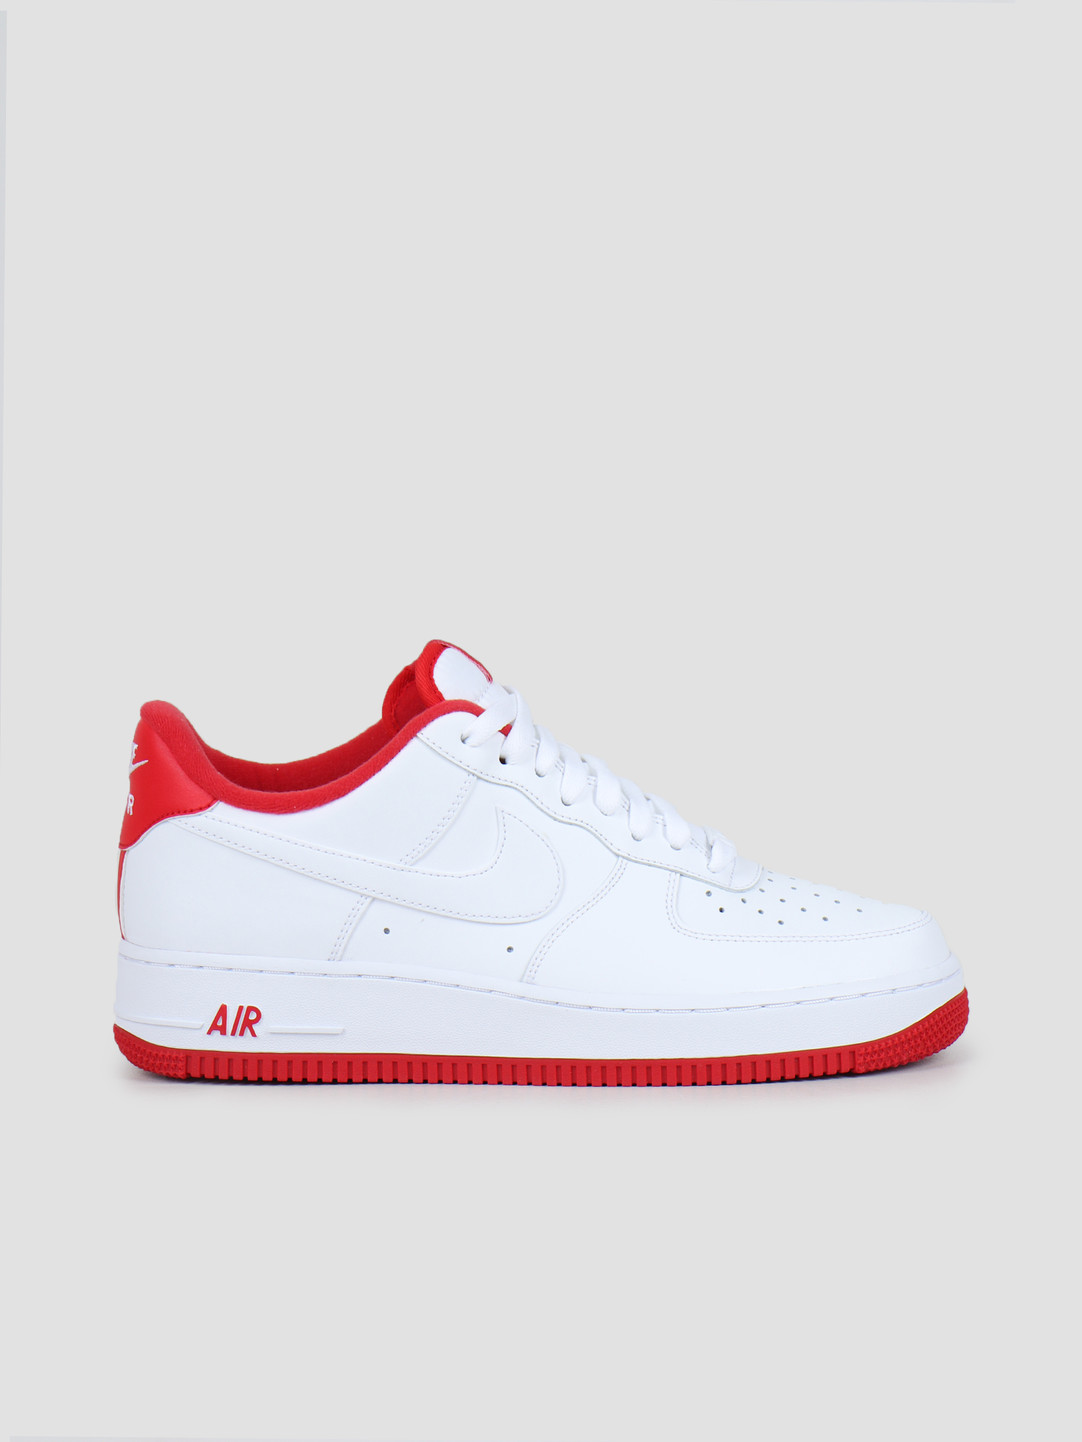 Nike Air Force 1 '07 1 White University Red CD0884 101